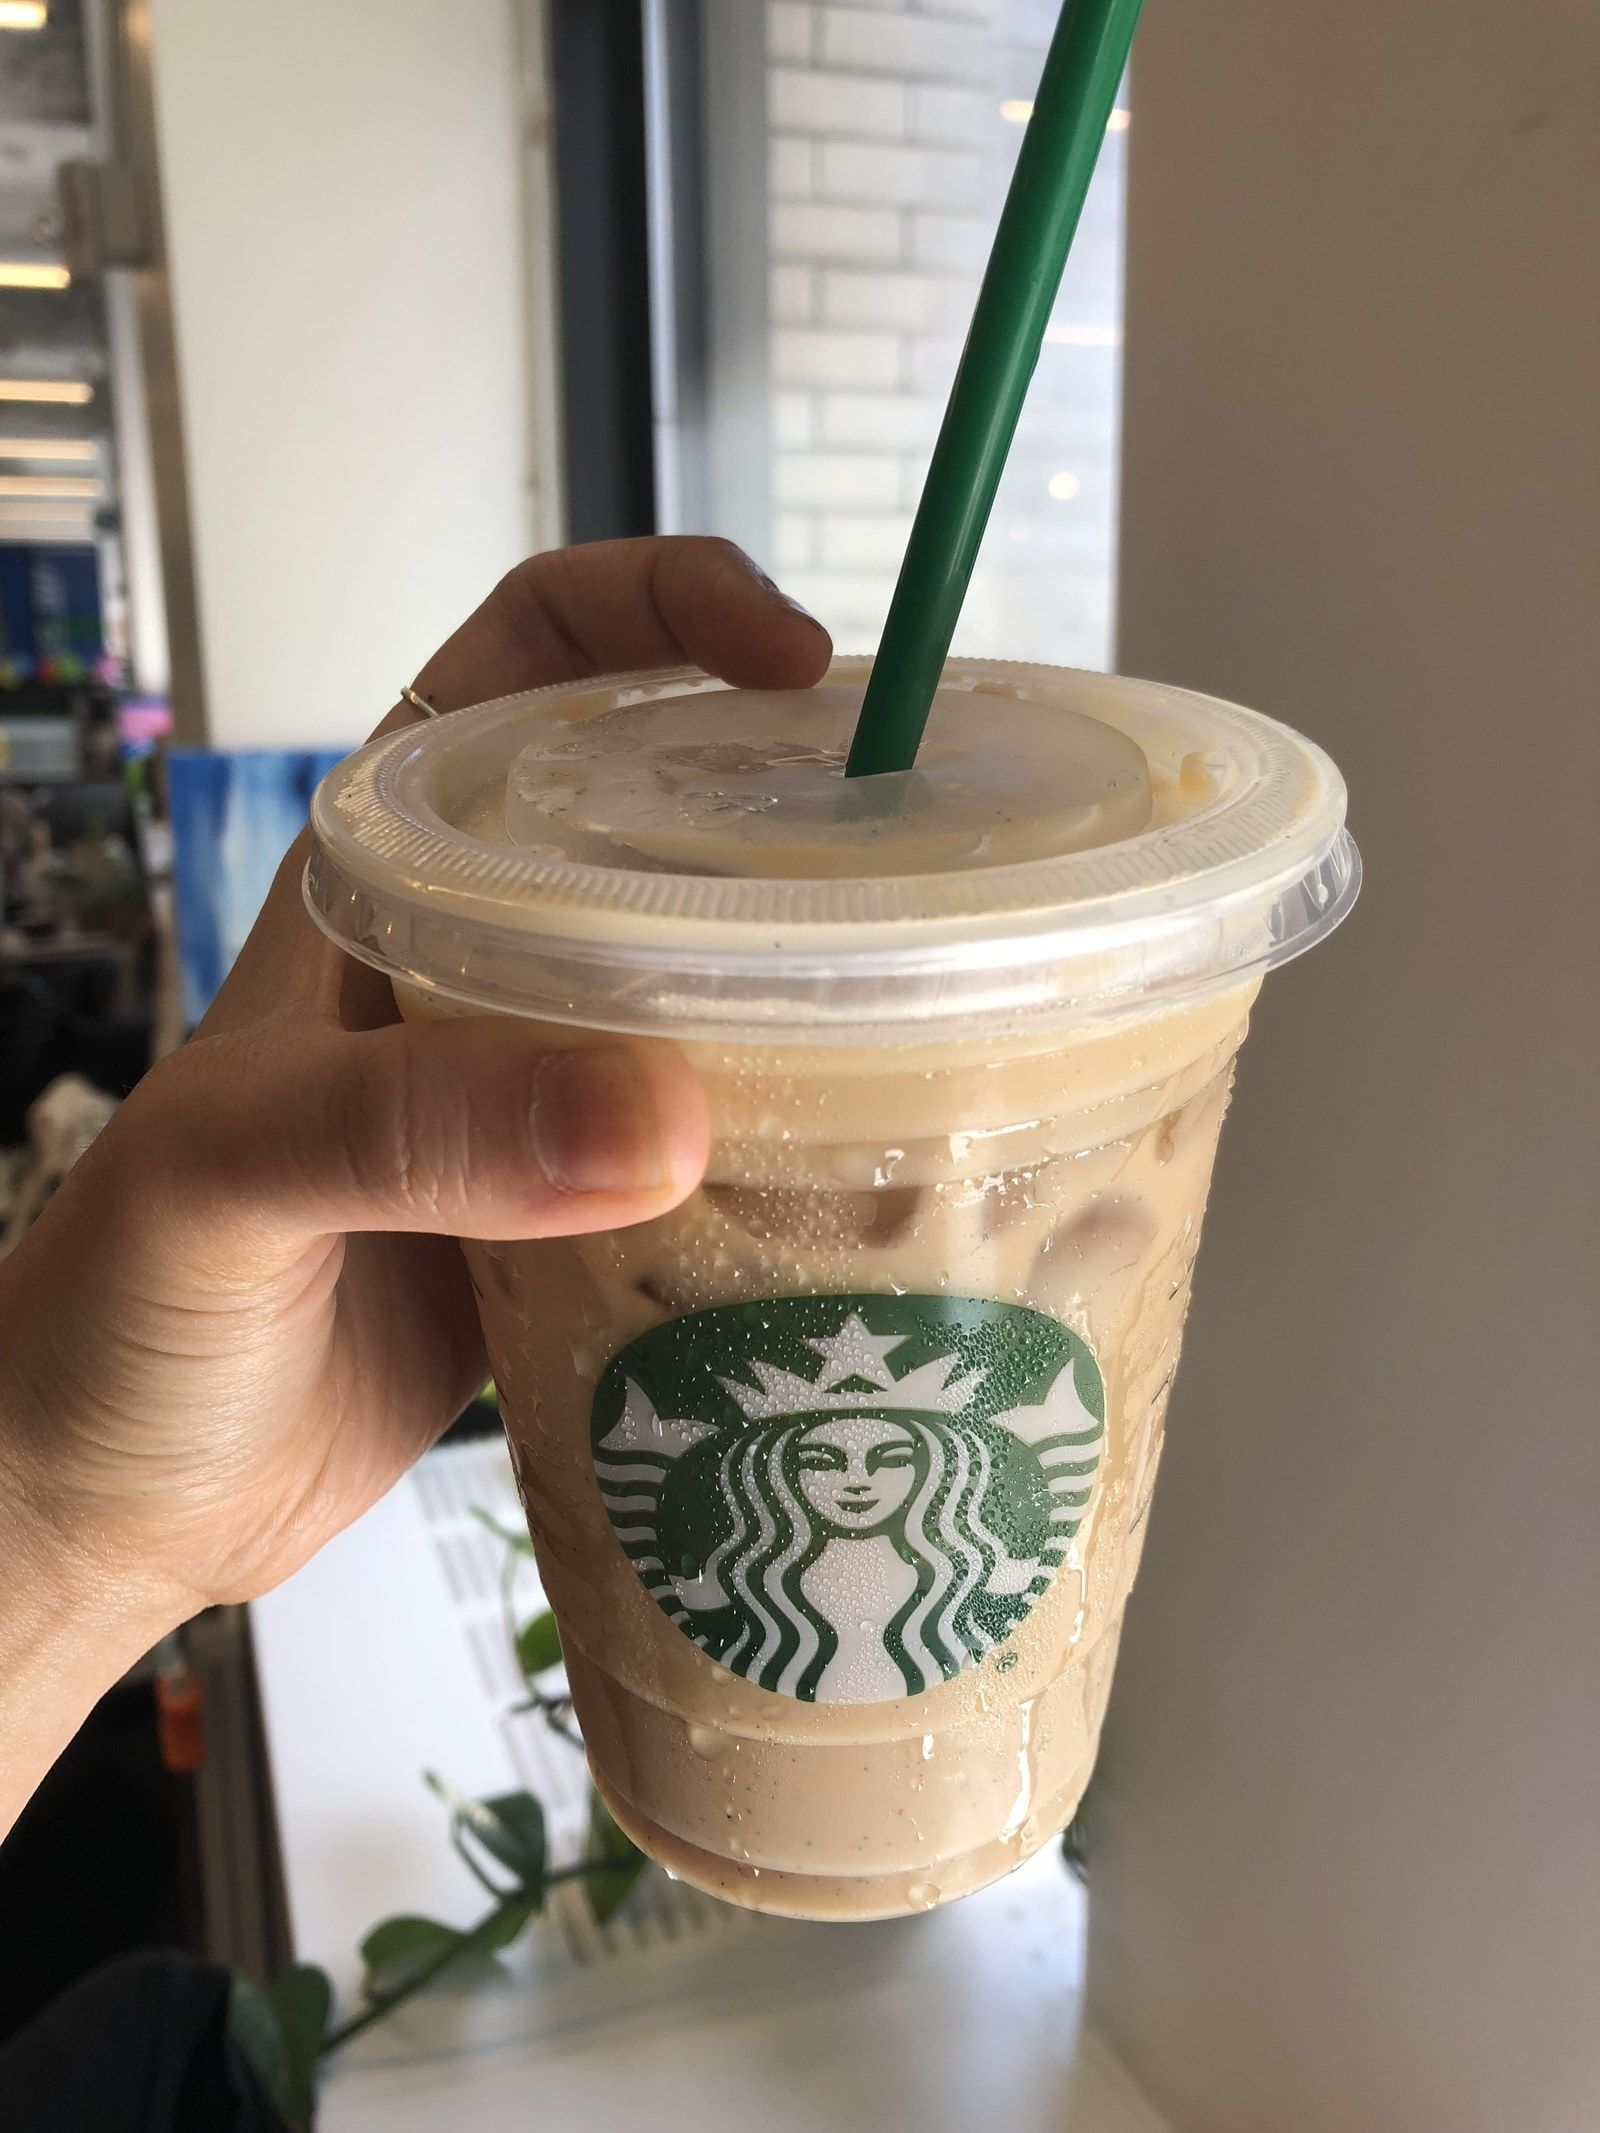 Next: the Iced Vanilla Bean Coconutmilk Latte. It looked ...